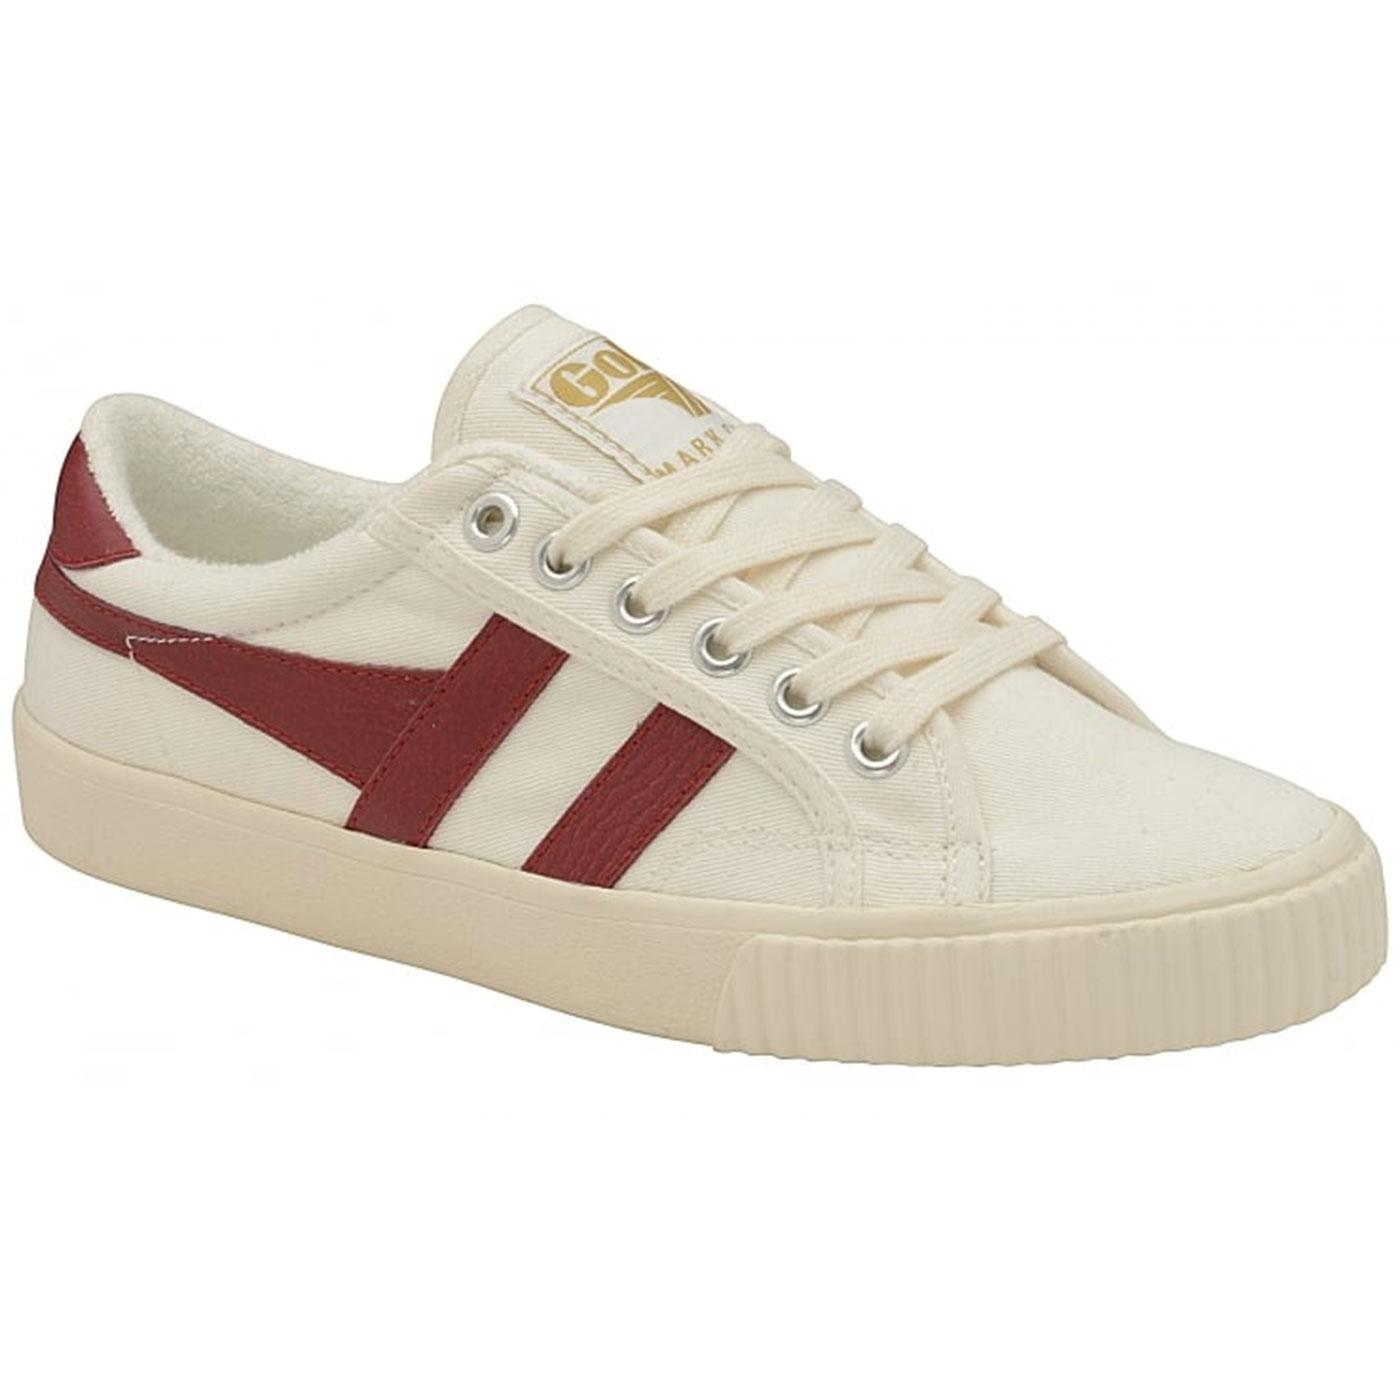 GOLA Mark Cox Retro 70s Canvas Tennis Trainers W/R